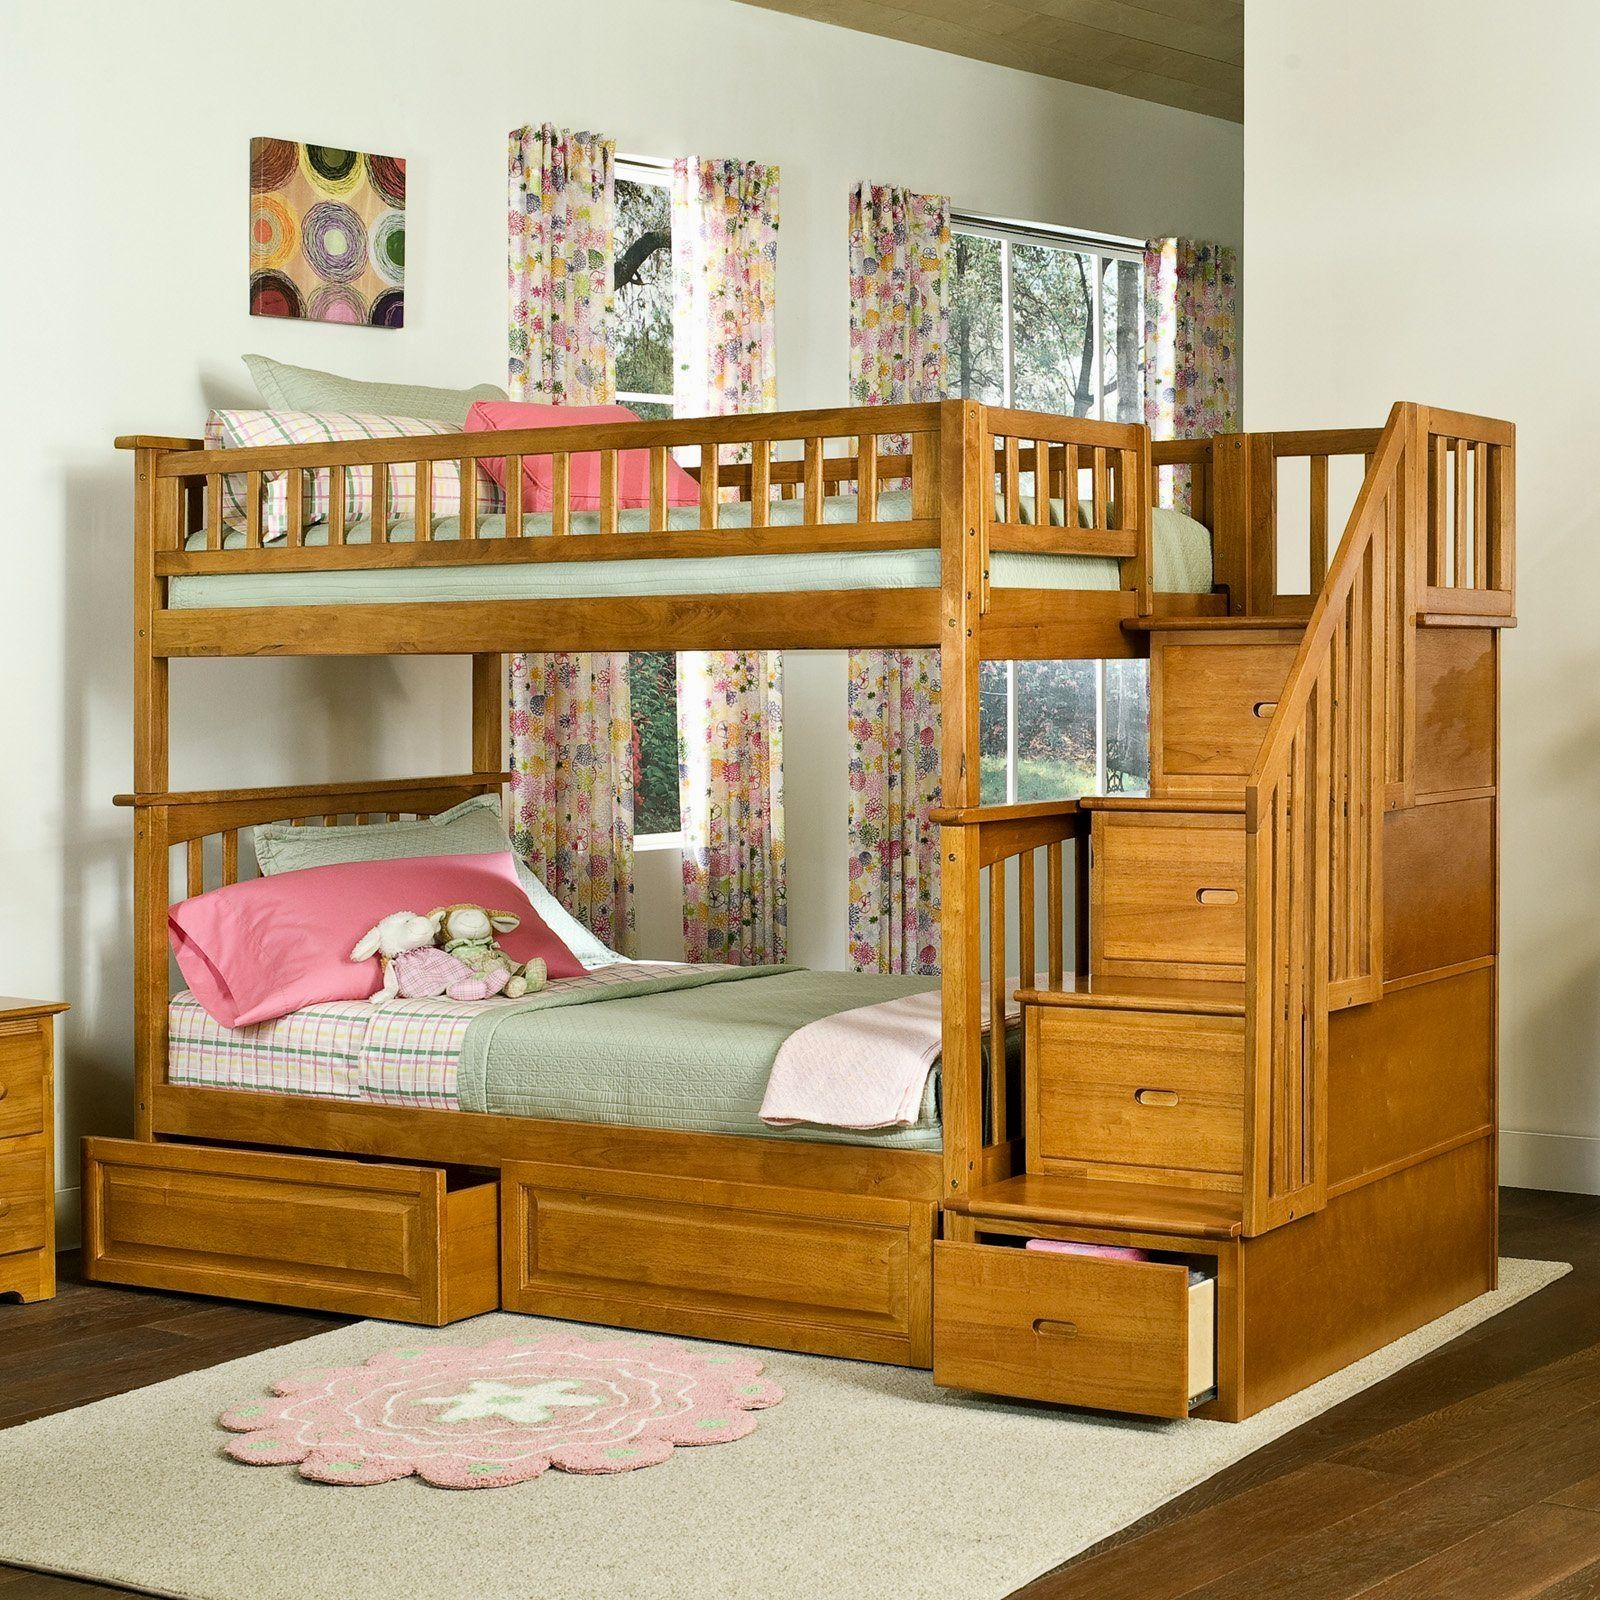 Small Bedroom Ideas With Double Deck